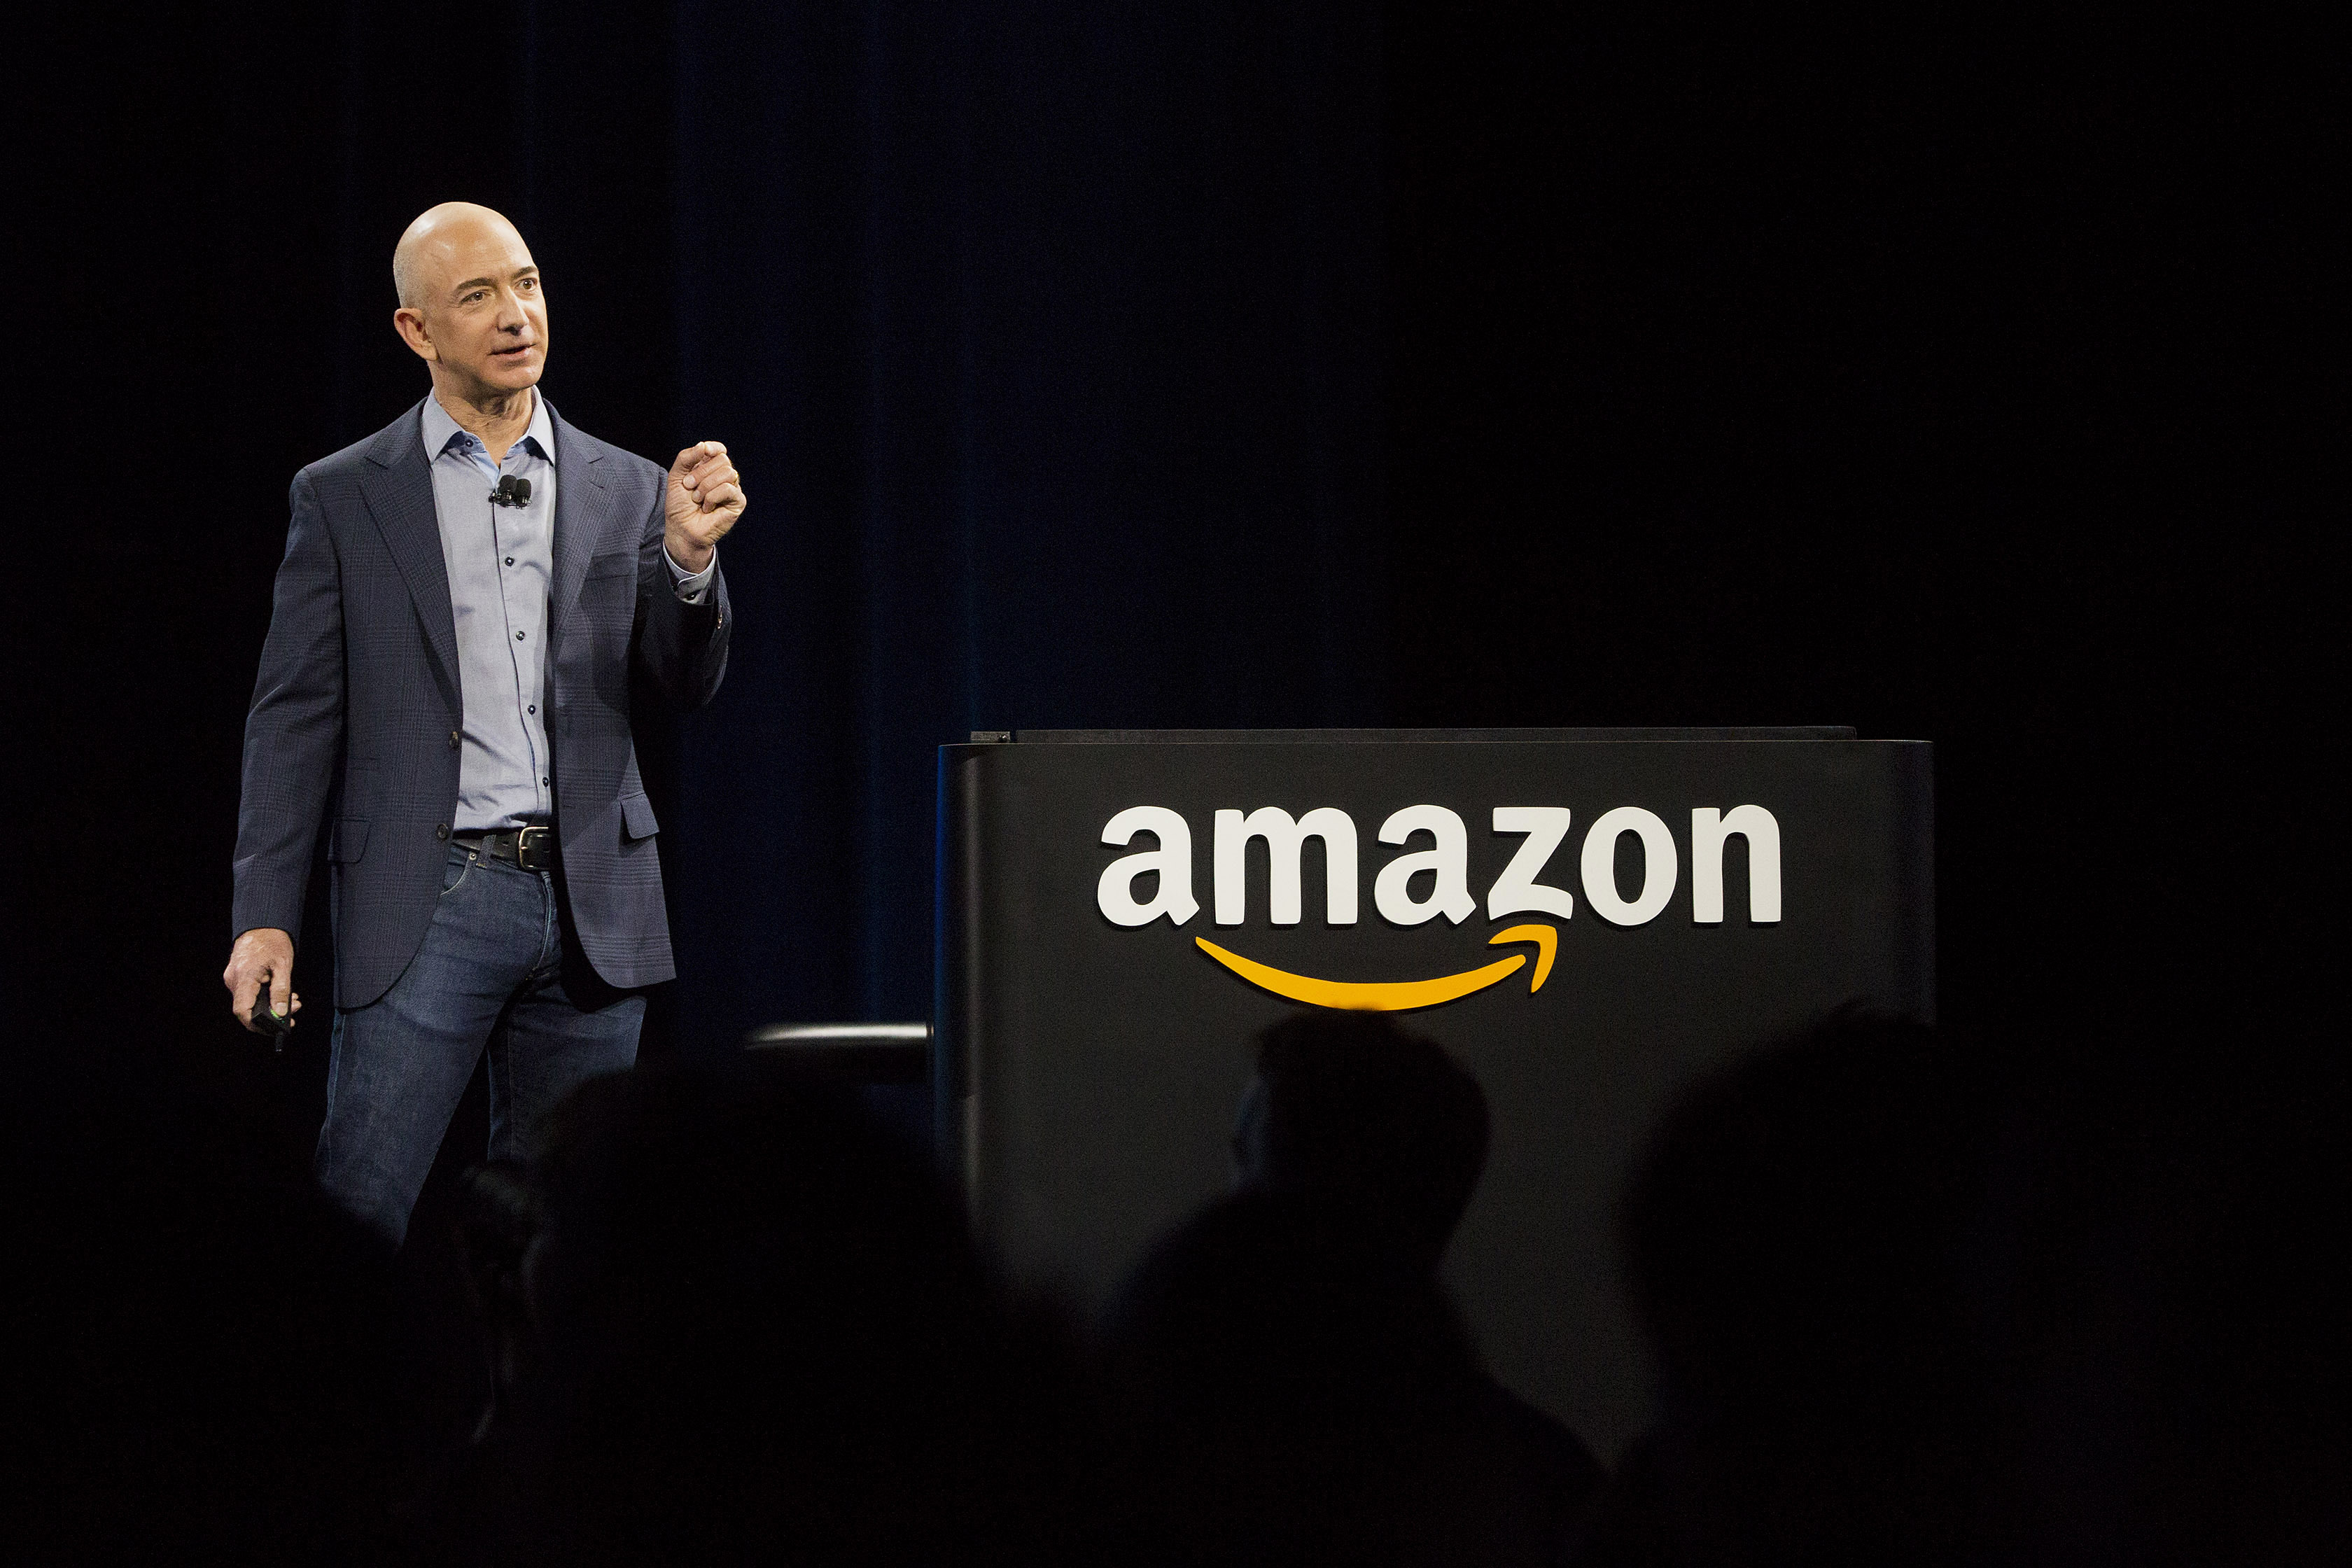 Jeff Bezos, chief executive officer of Amazon.